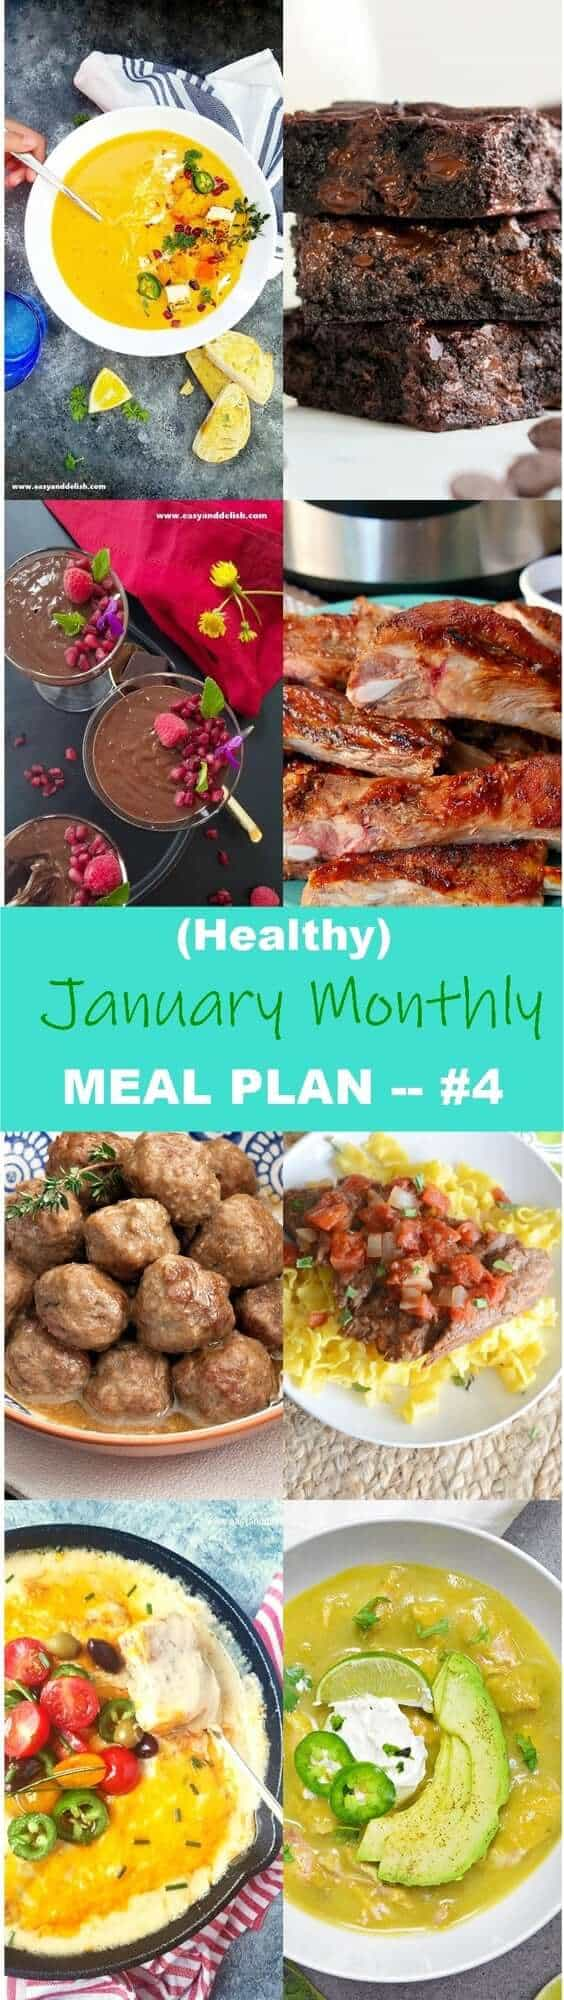 8 images showing some of the dishes that are in January Monthly Meal Plan.